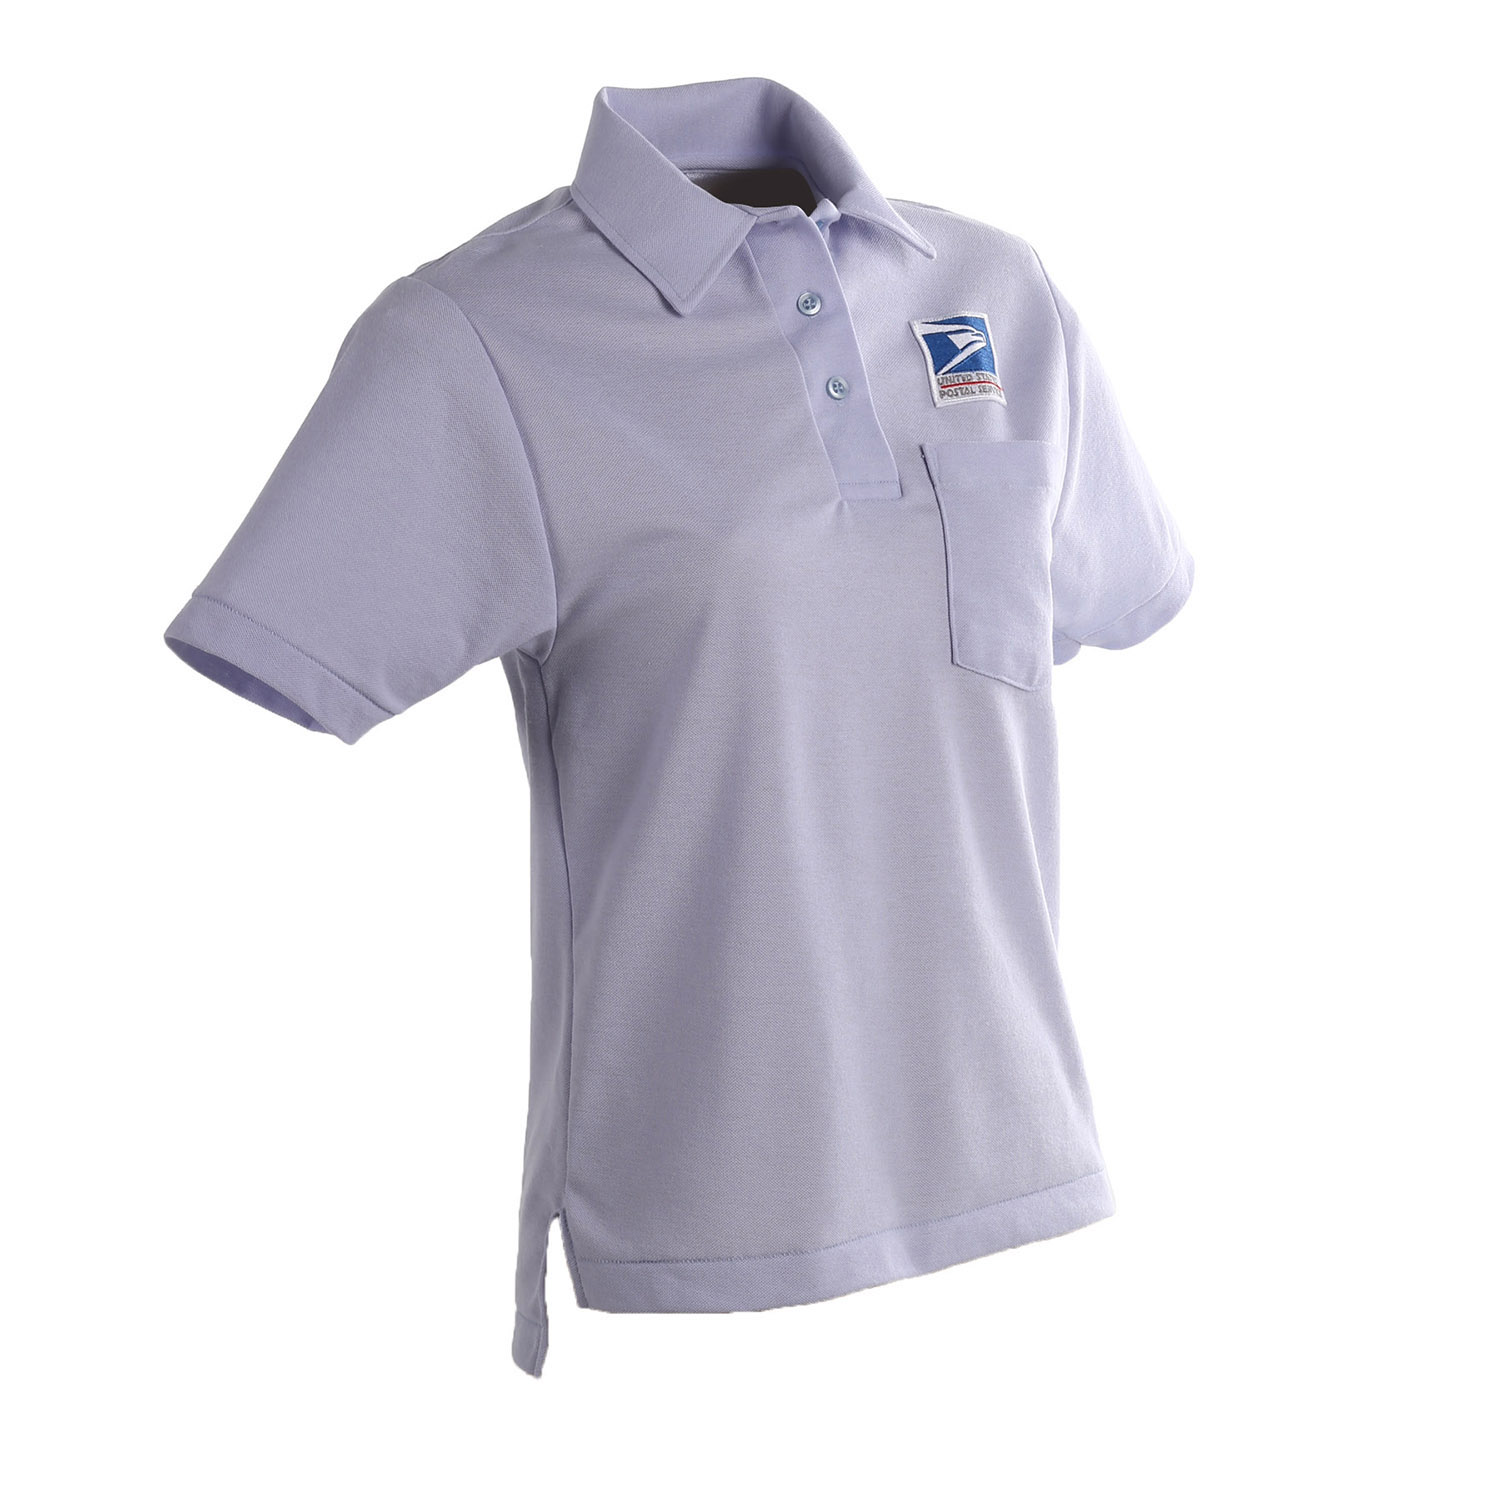 Womens Knit Polo Shirt For Letter Carriers And Motor Vehi